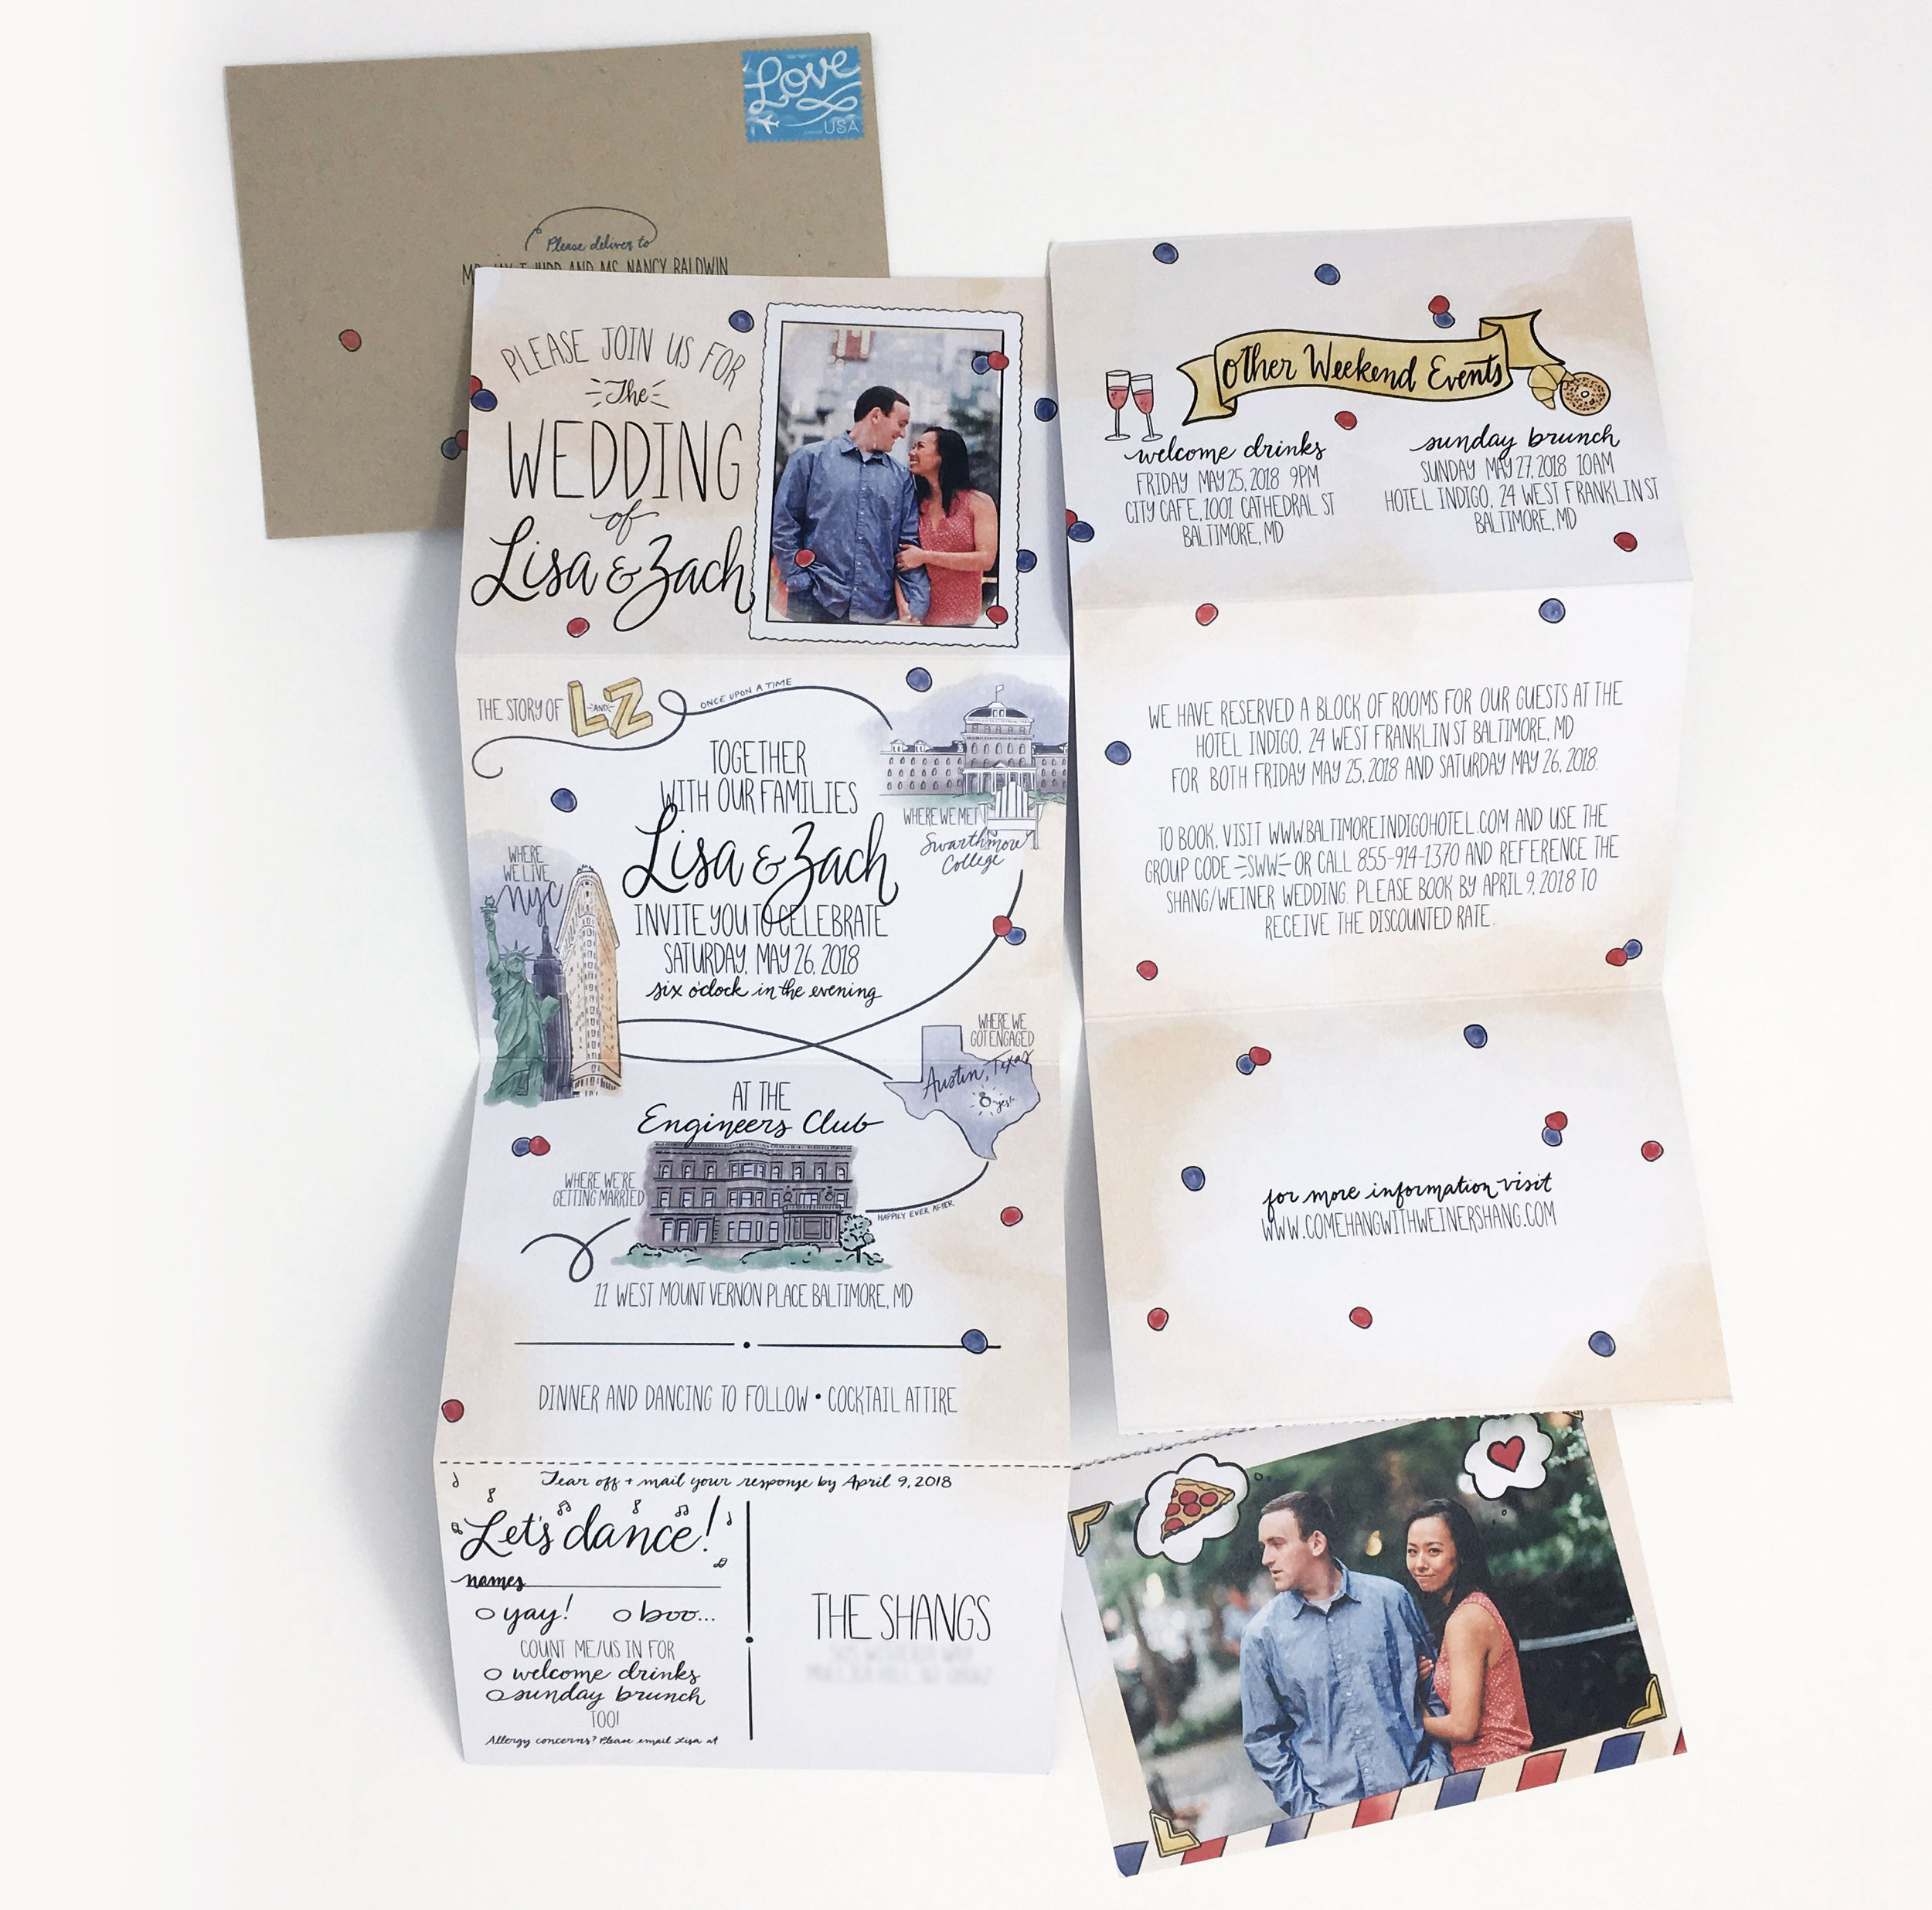 Studio-Eighty-Seven-Custom-Wedding-Invitations-LisaAndZach-Main.jpg